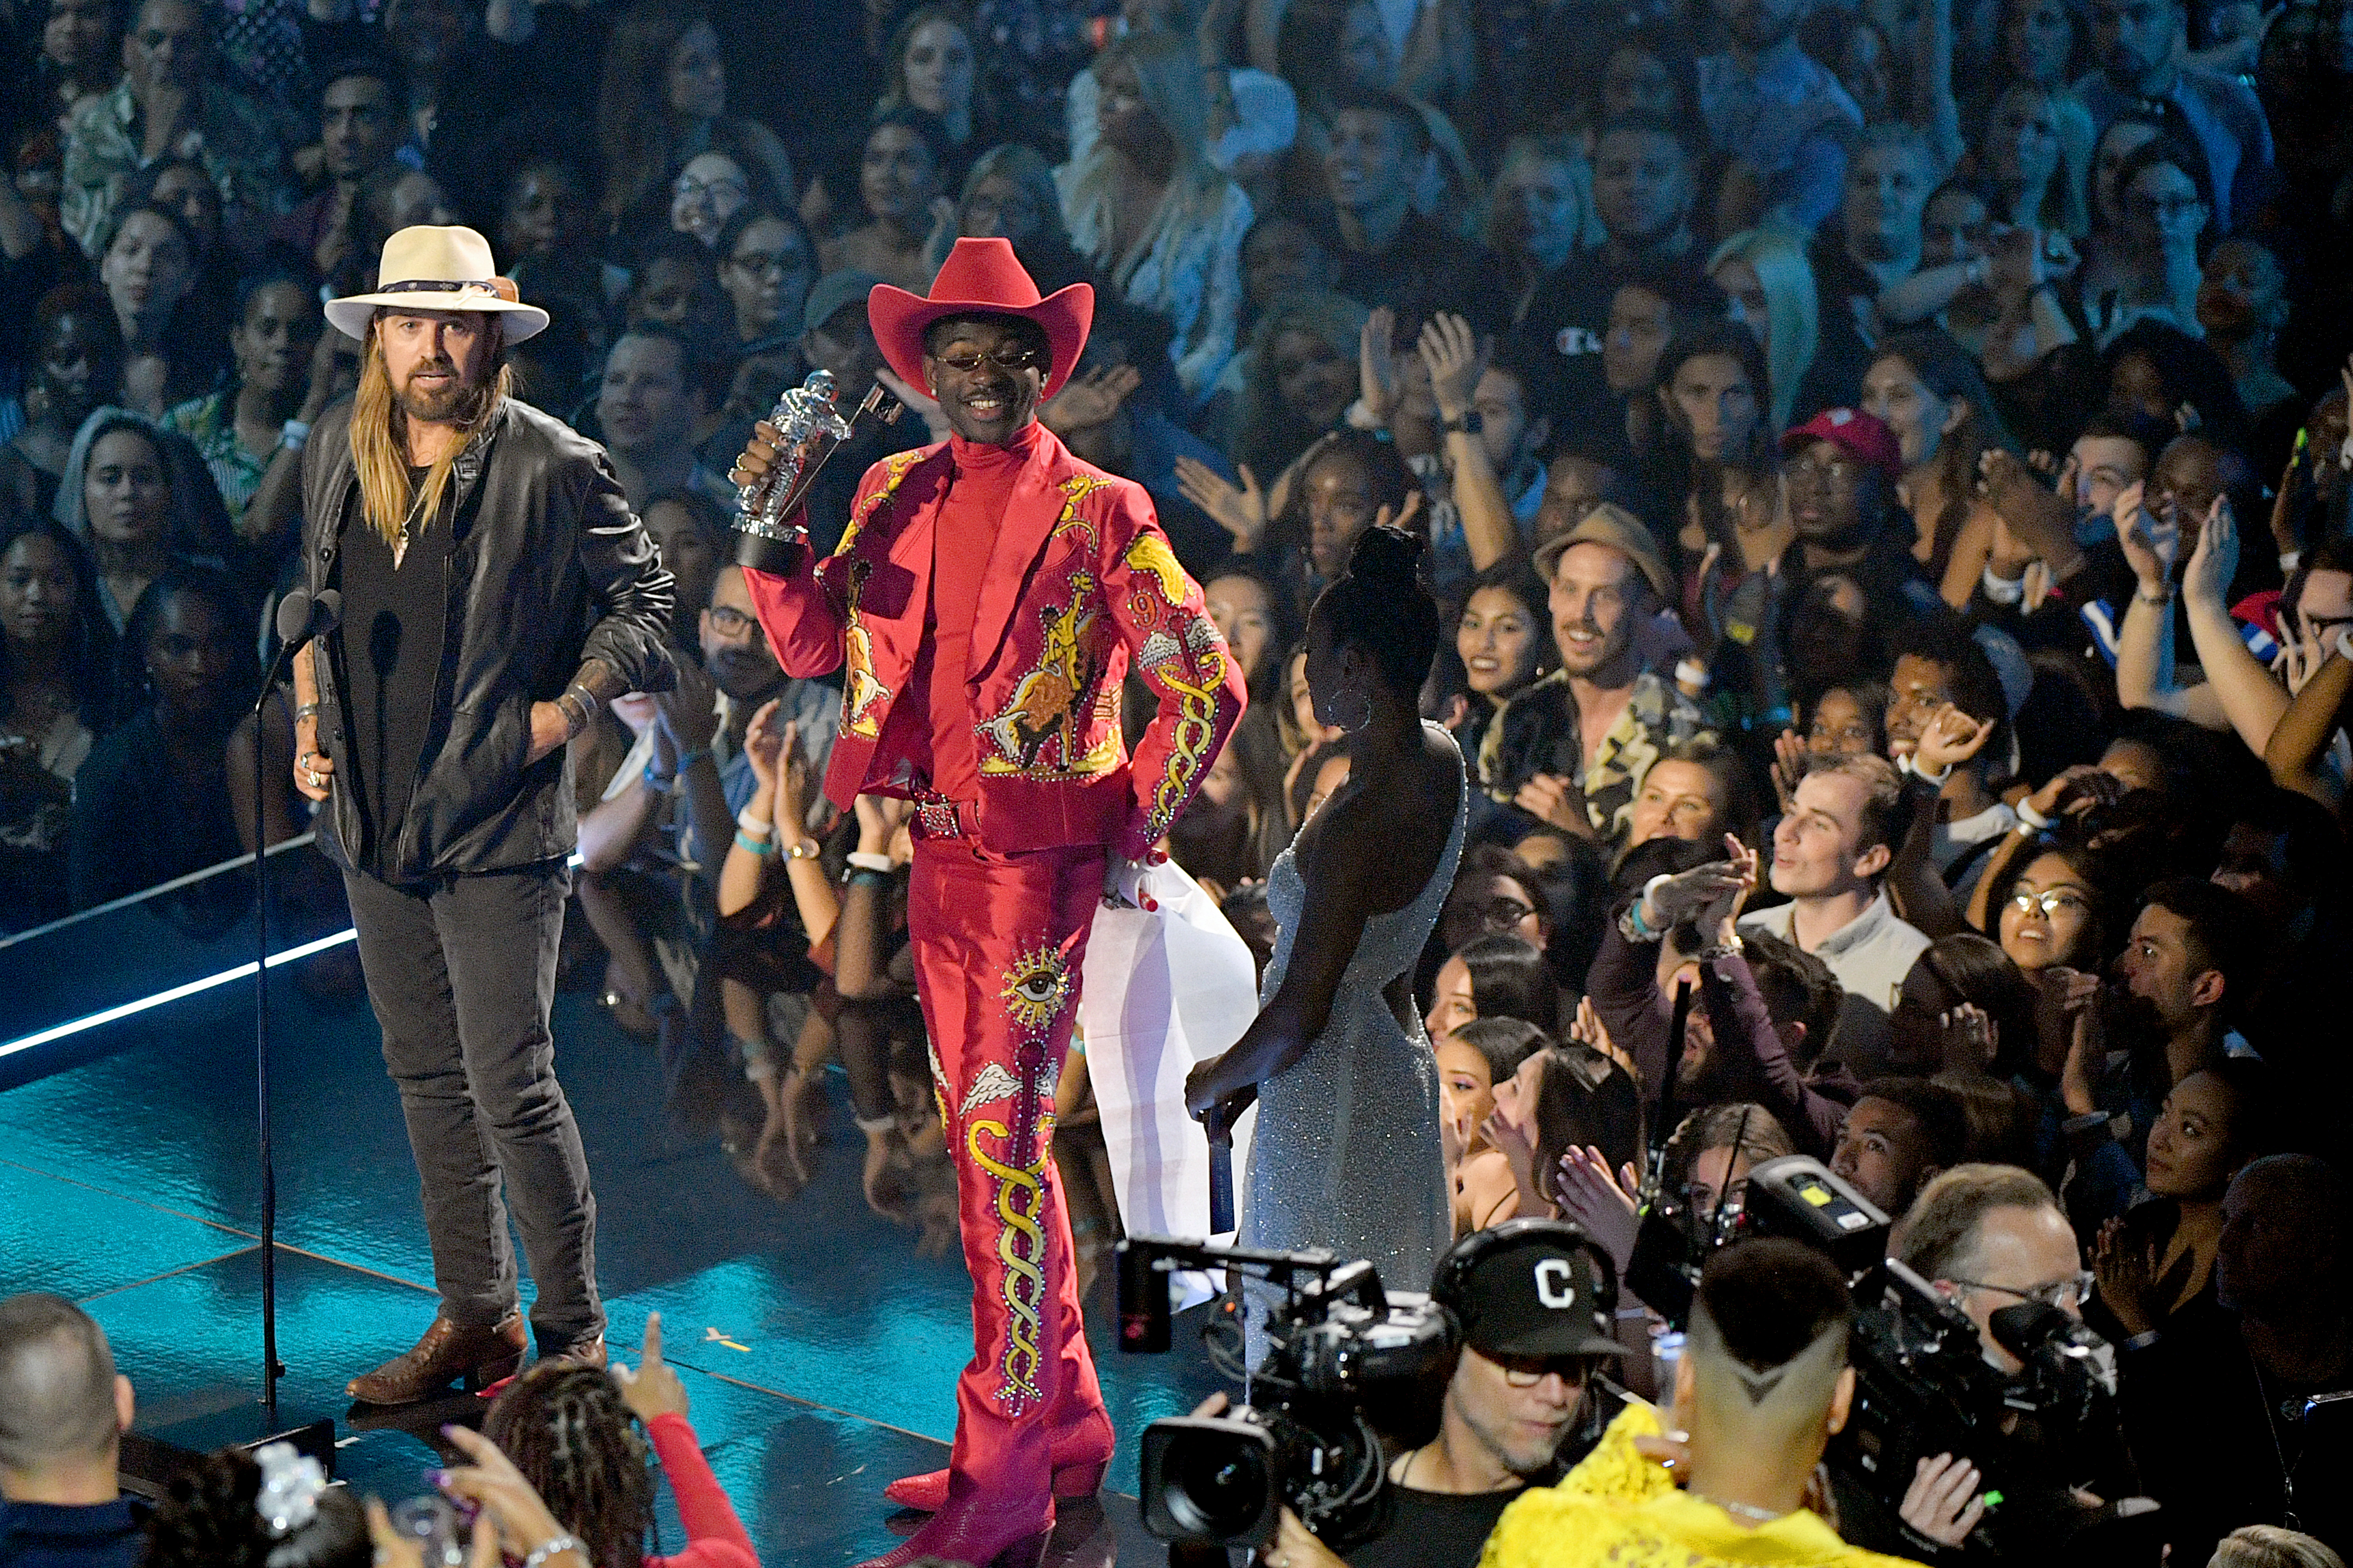 Billy Ray Cyrus and Lil Nas X speak onstage during the 2019 MTV Video Music Awards.